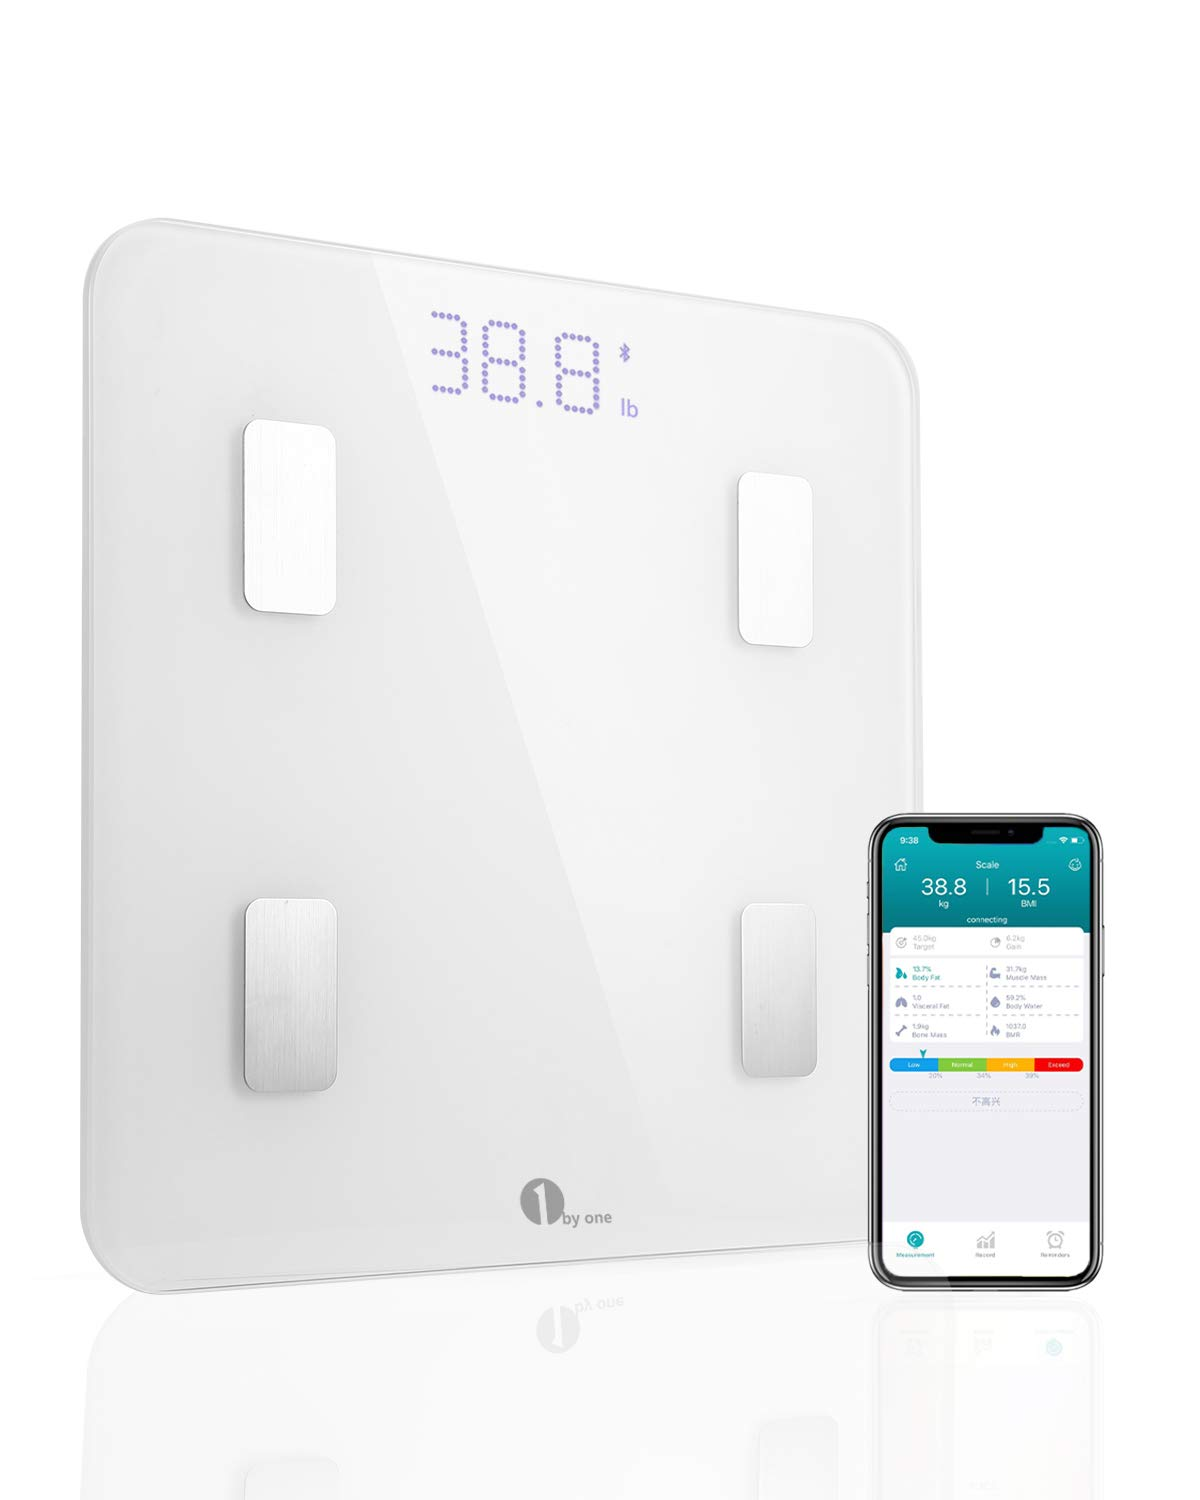 1byone Bluetooth Smart Body Fat Scale with iOS and Android App, Accurate Health Metrics, Body Composition & Weight Measurements, White 4336305975